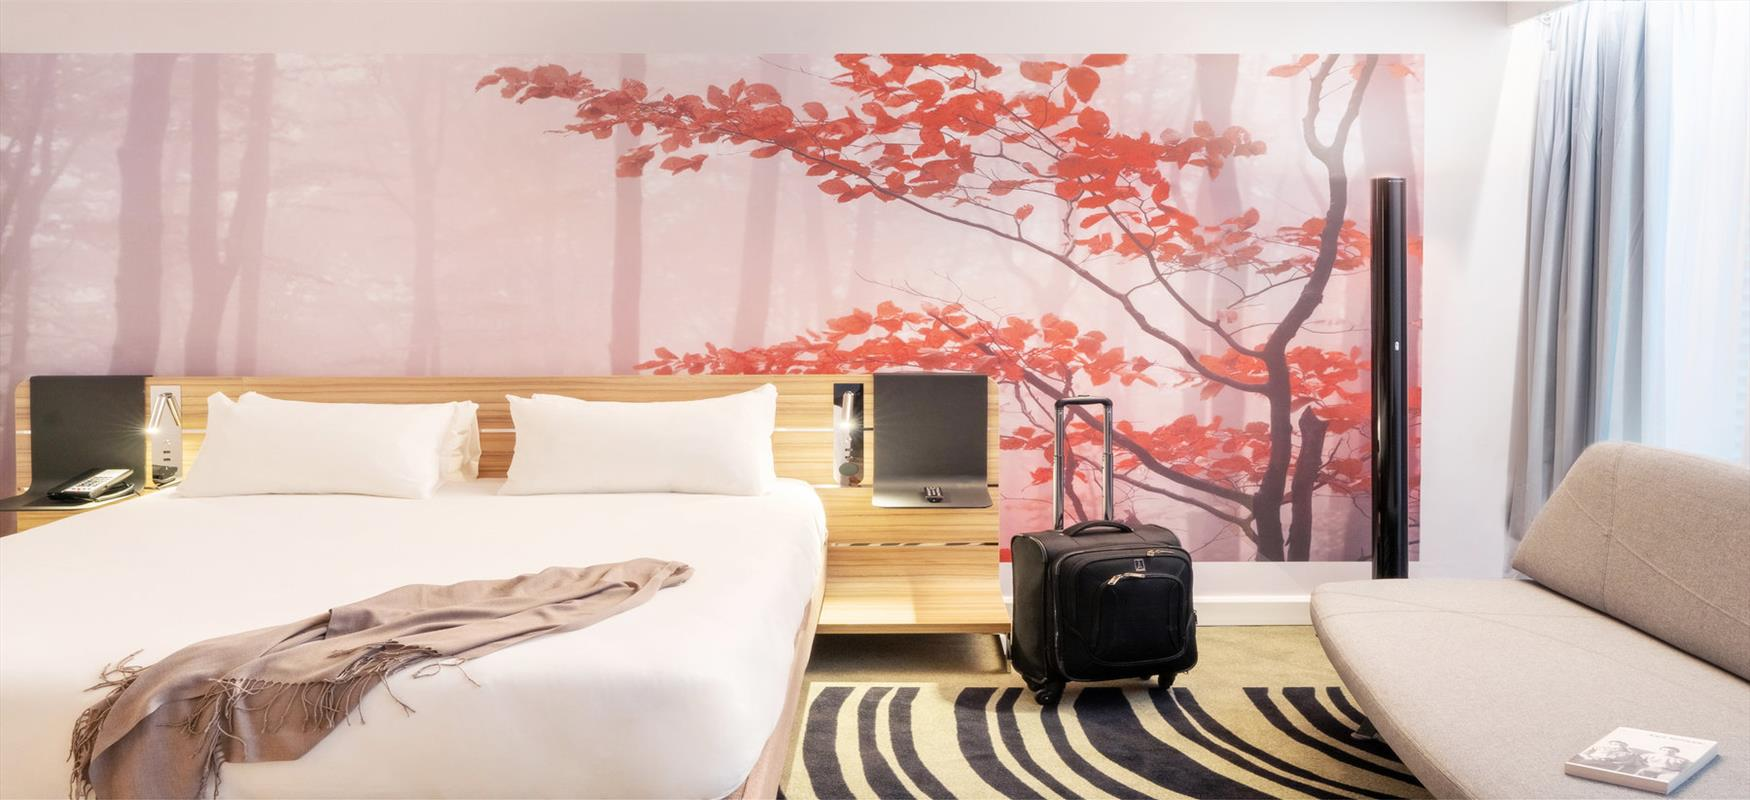 Novotel bedroom header